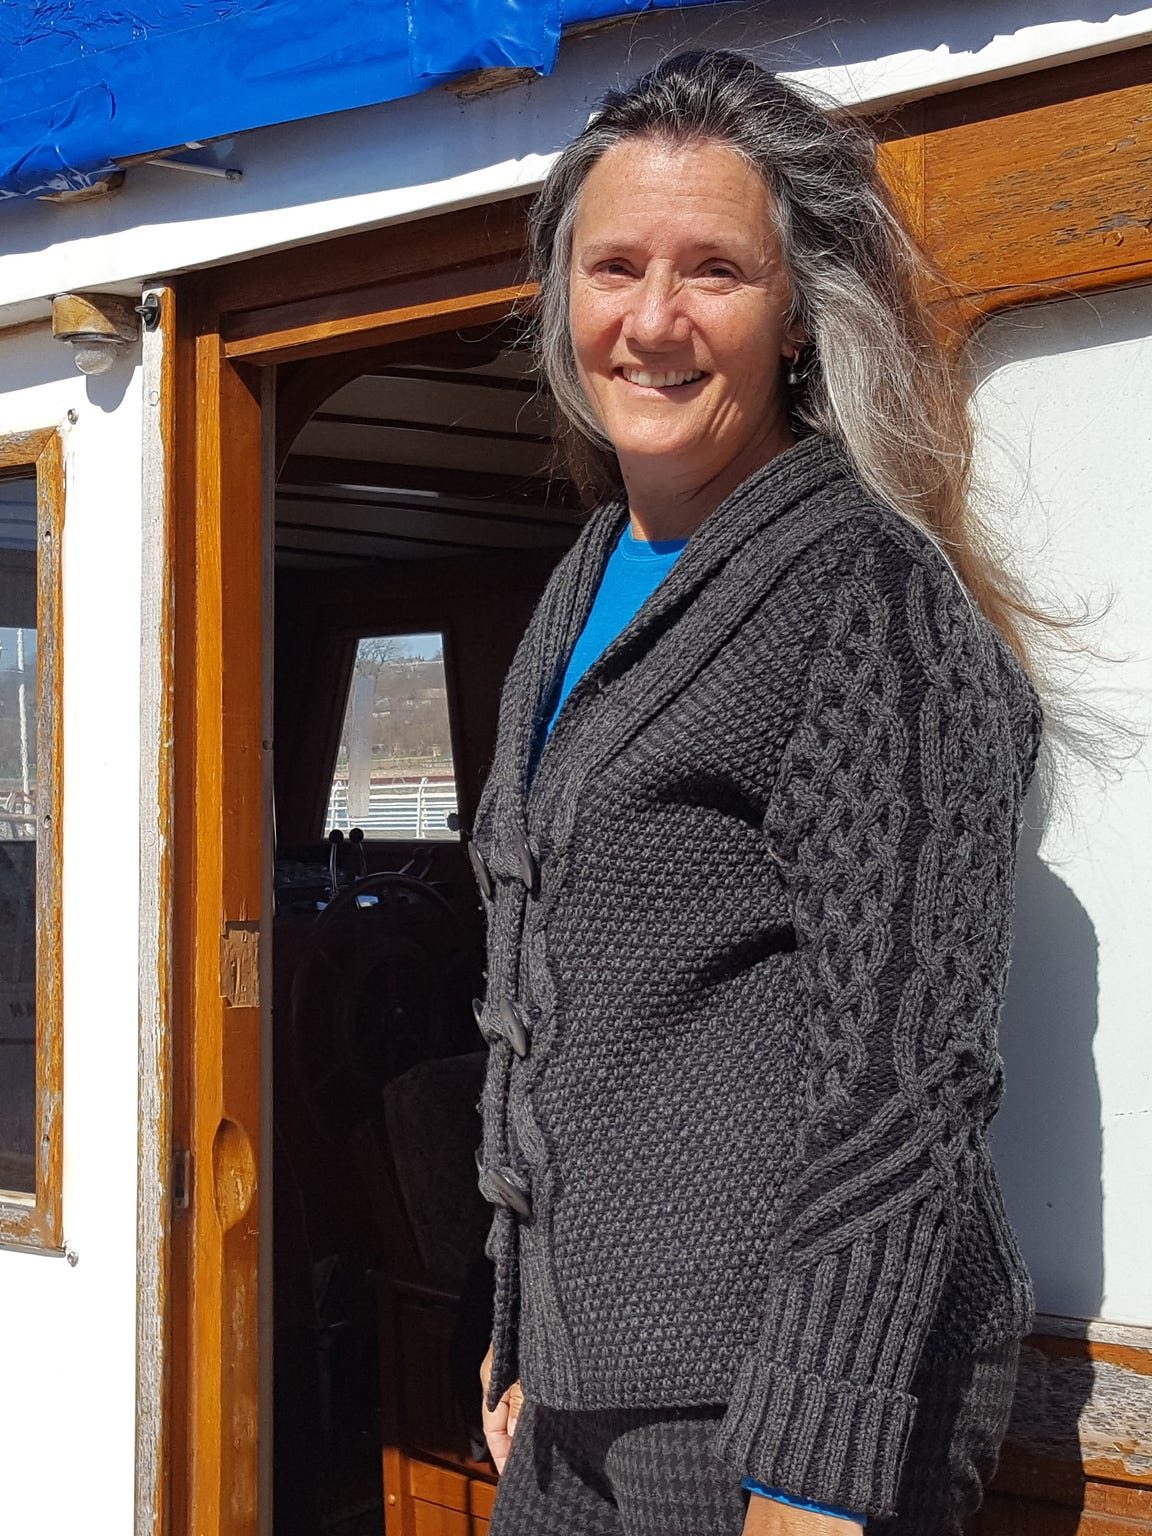 Pamela Wellumson poses for a photo on the boat she